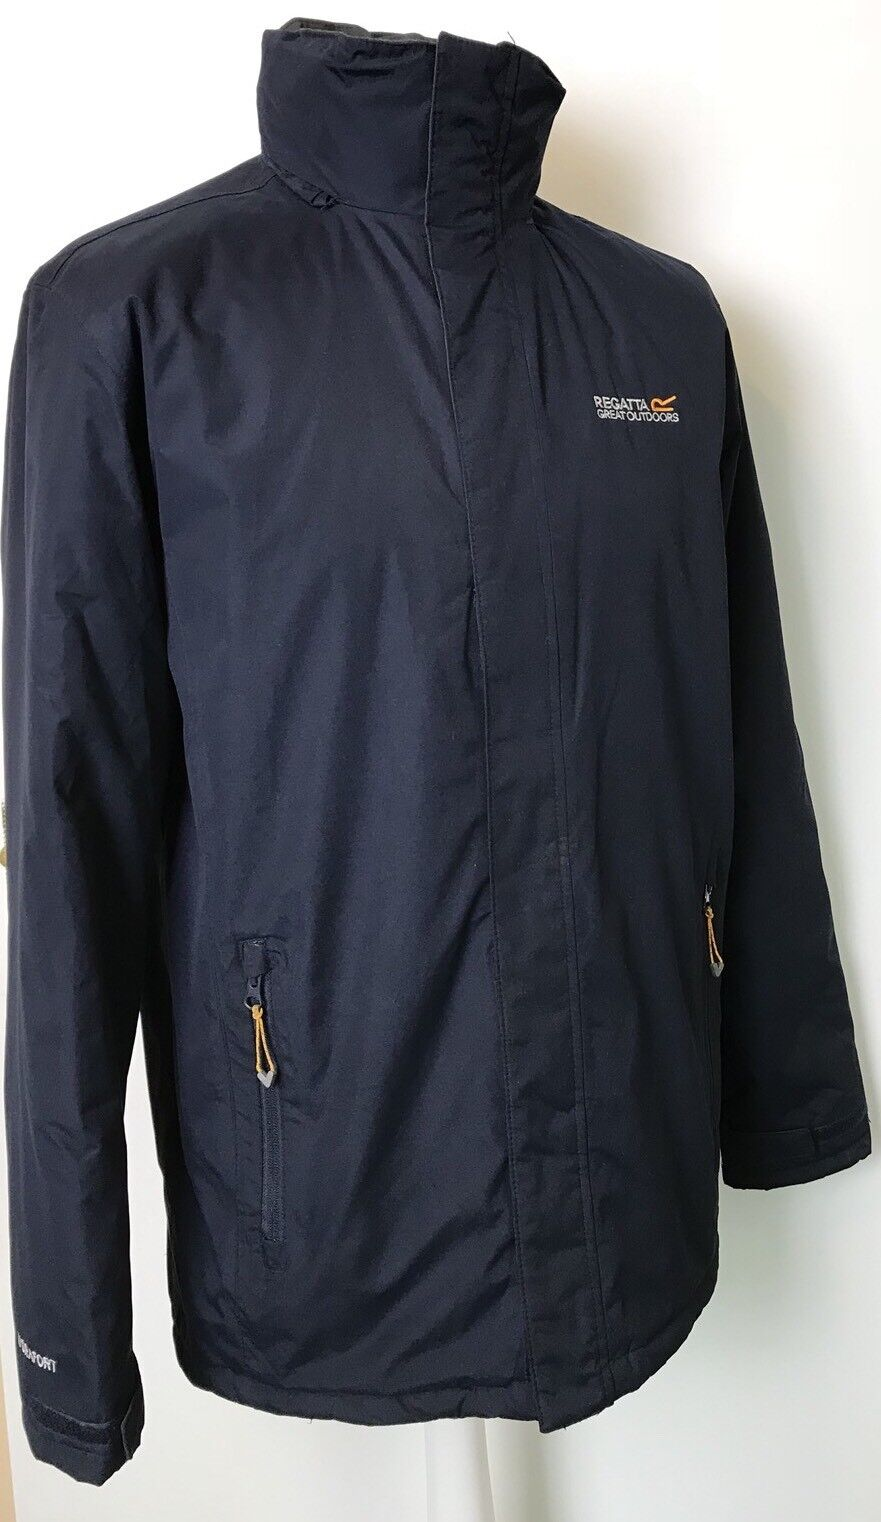 Regatta Hommes Thornridge Bleu Marine Hydrafort Veste / Manteau Rembourré Imperméable